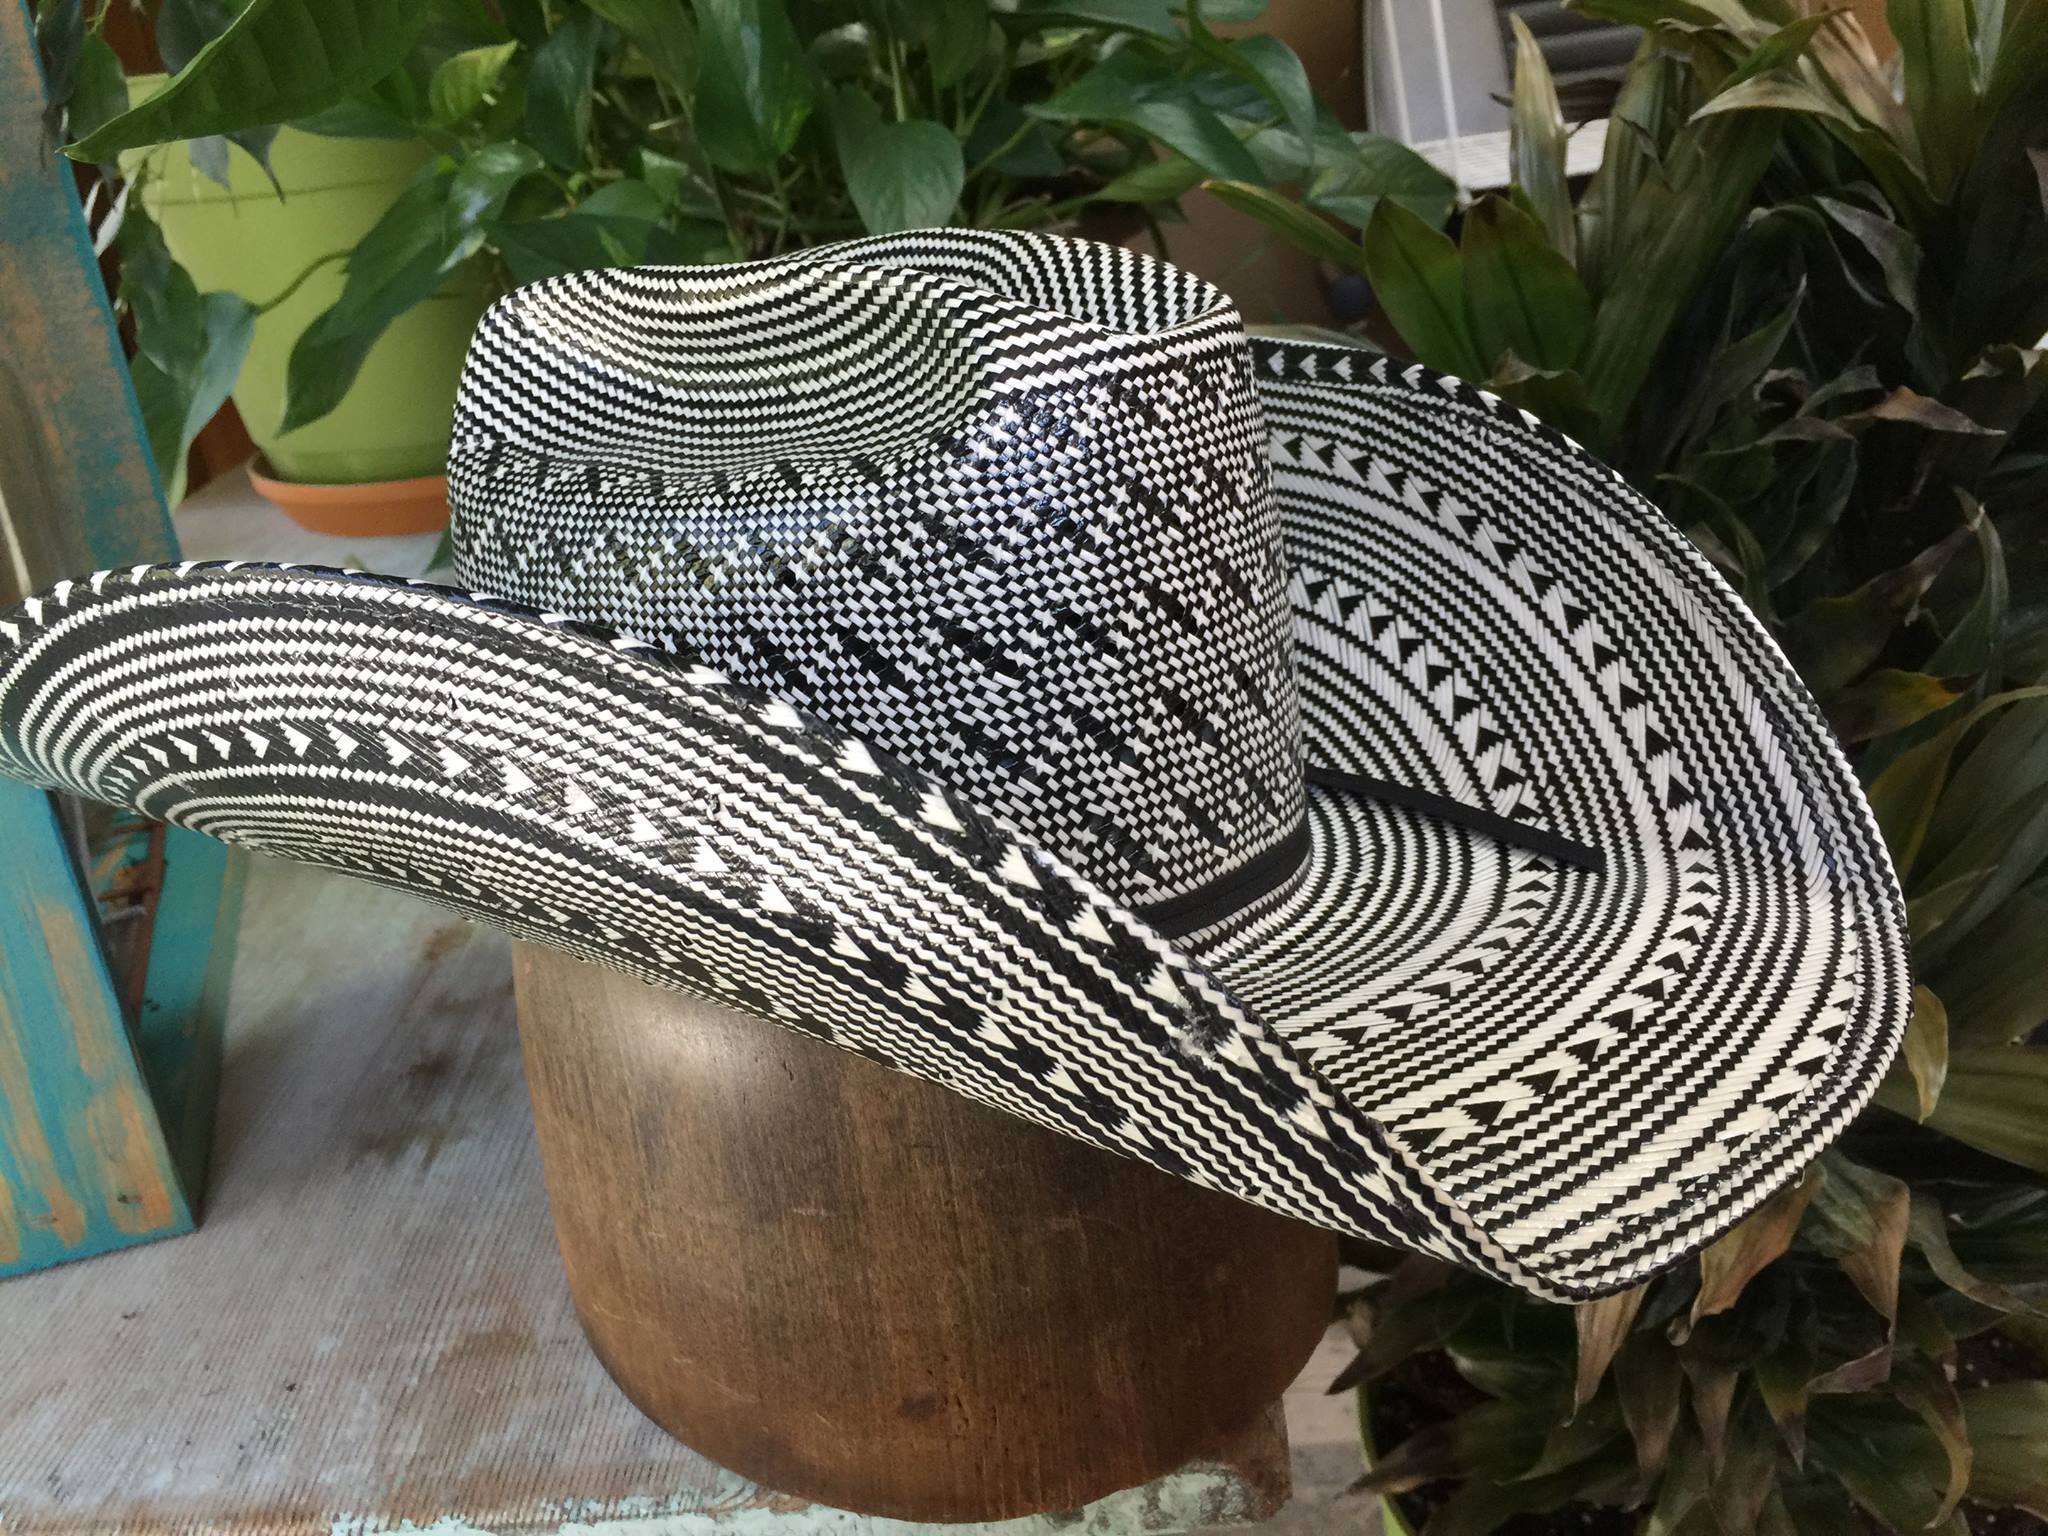 Black and white new straw! American Hats! The best! All sizes available!